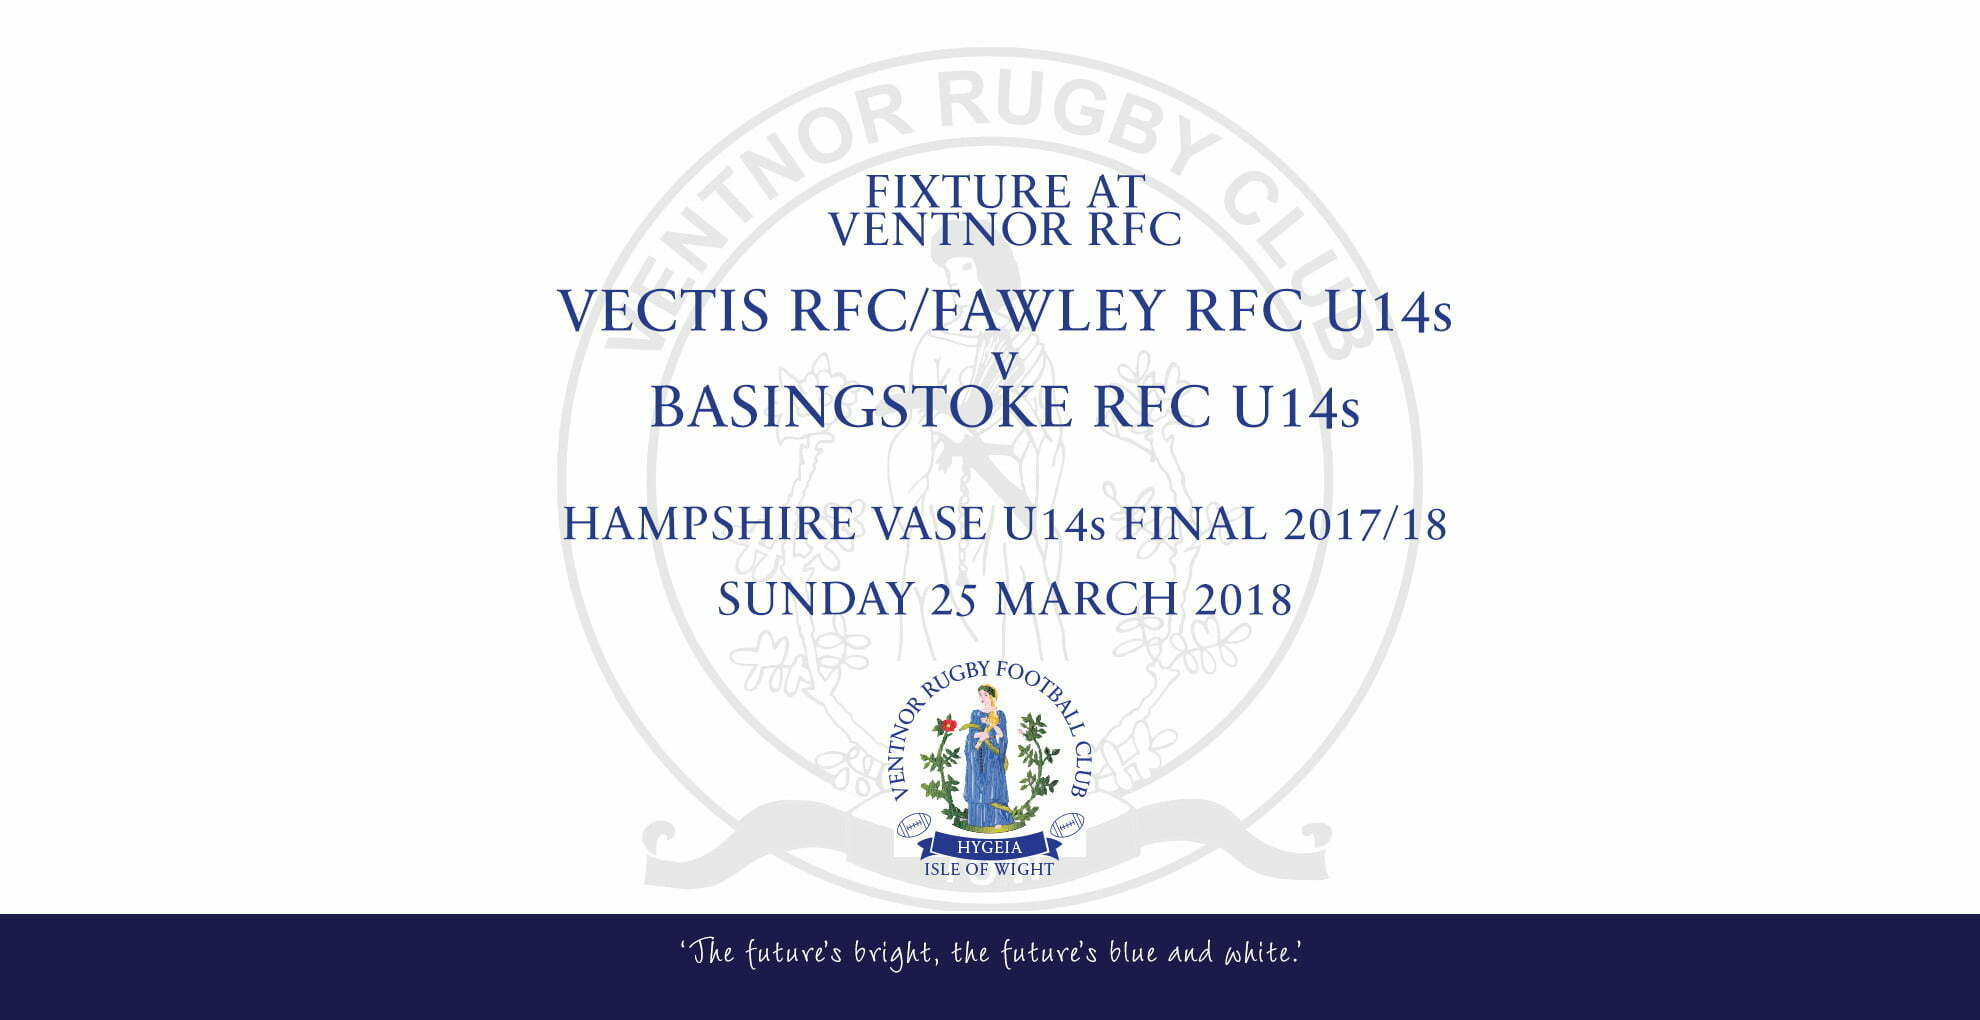 vectis-rfc-u14s-fawley-rfc-u14s-v-basinstoke-u14s-hampshire-vase-u14s-final-at-ventnor-rfc-25032018